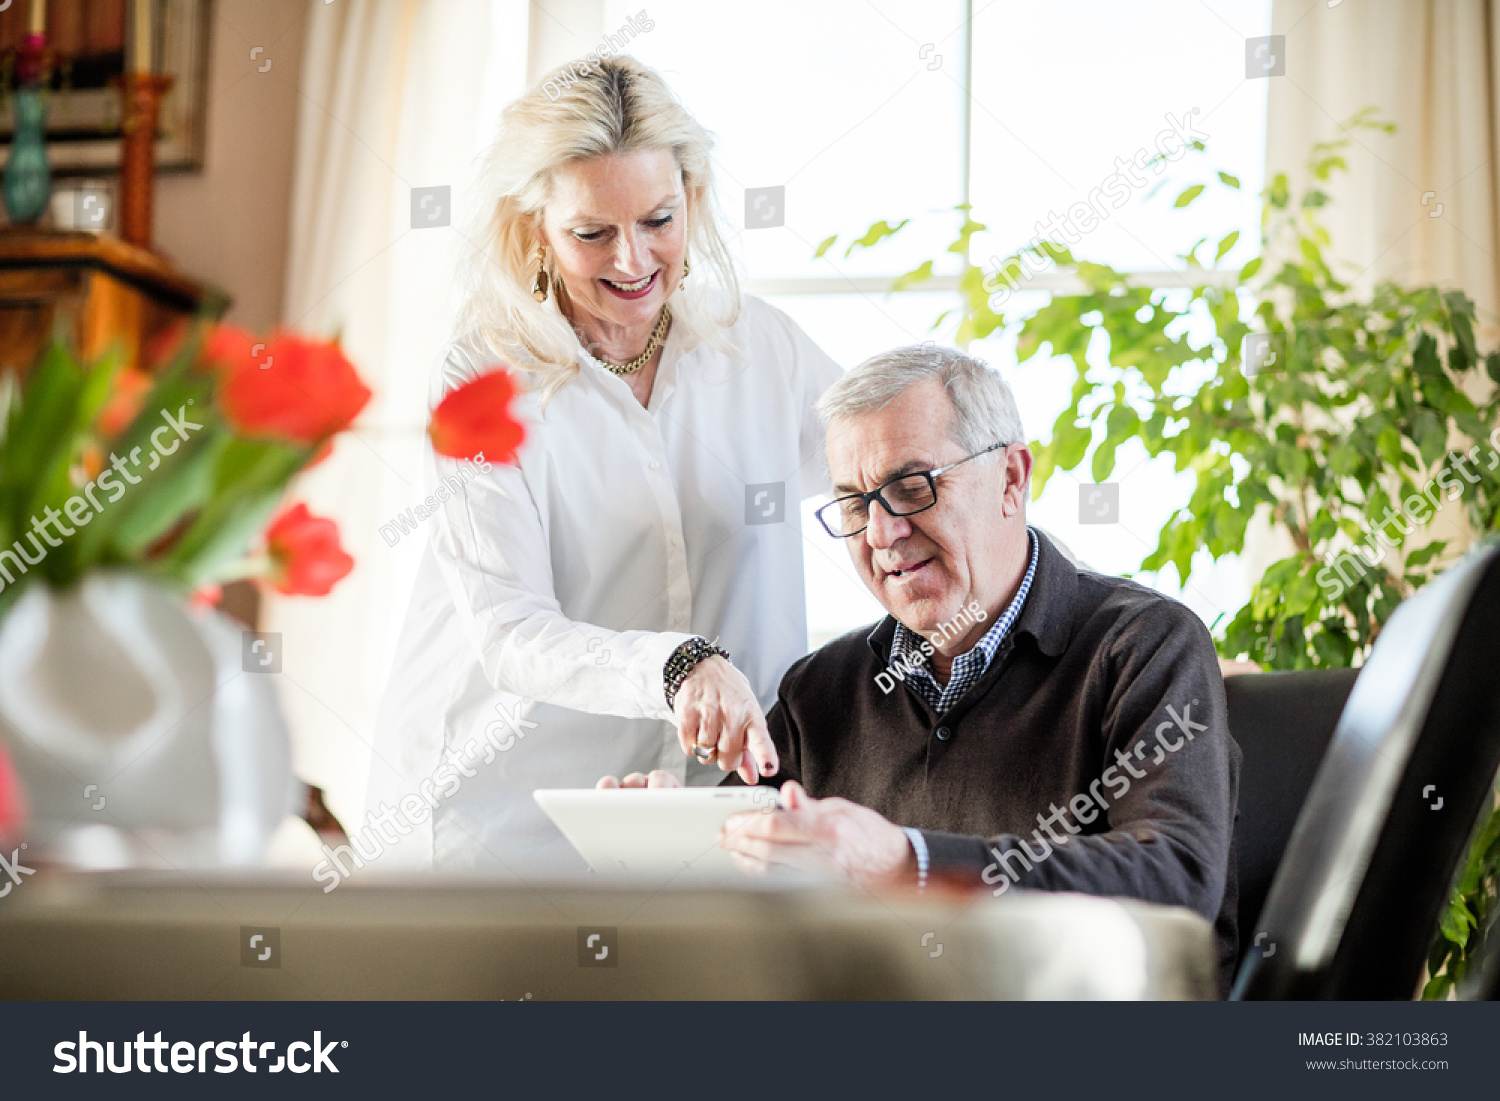 Older Couple Having Fun Smiling While Stock Photo Edit Now 382103863